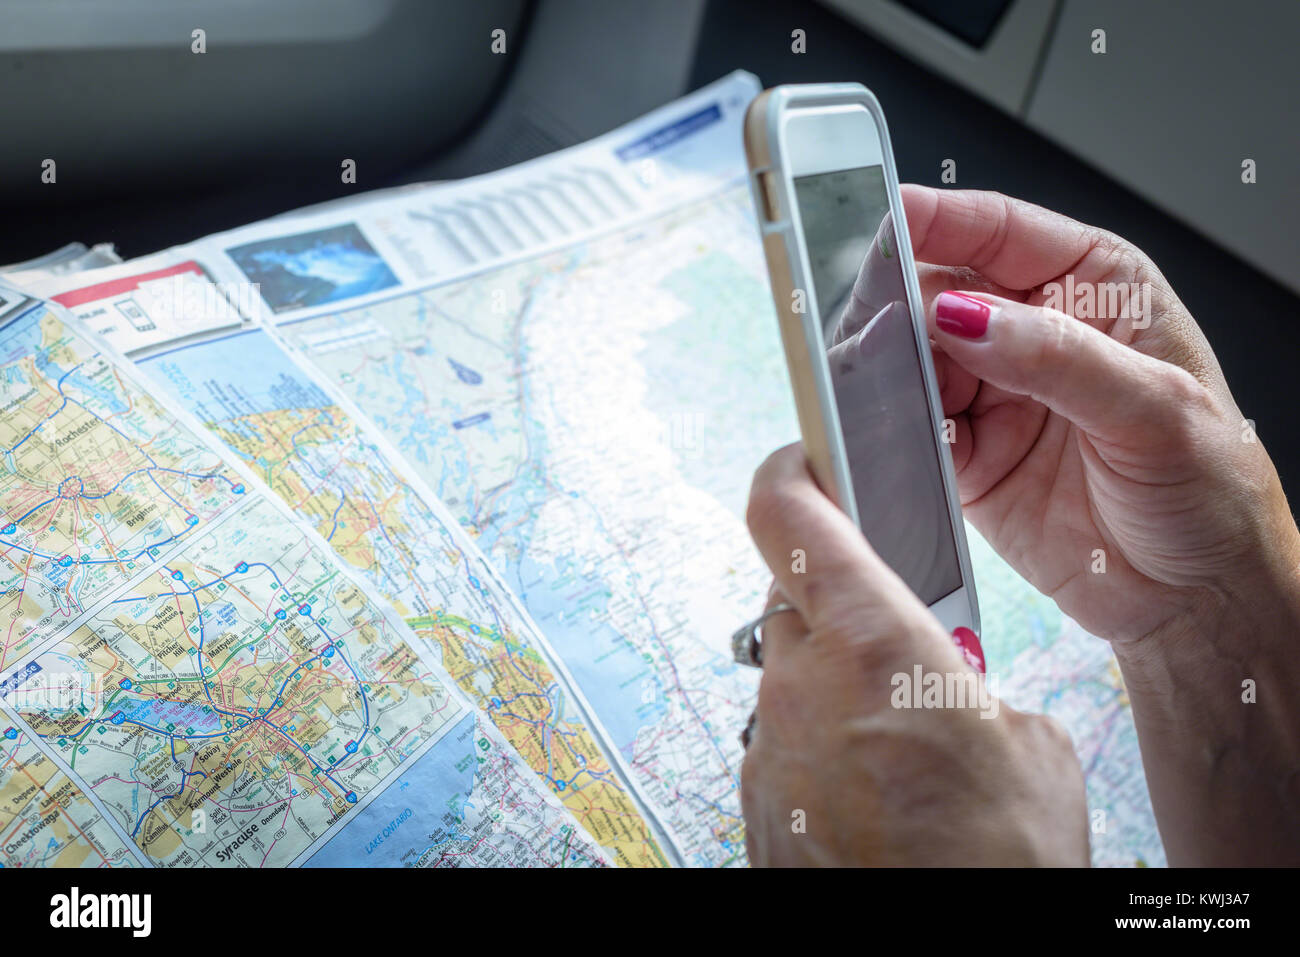 woman holding a smartphone and a paper map getting directions - Stock Image